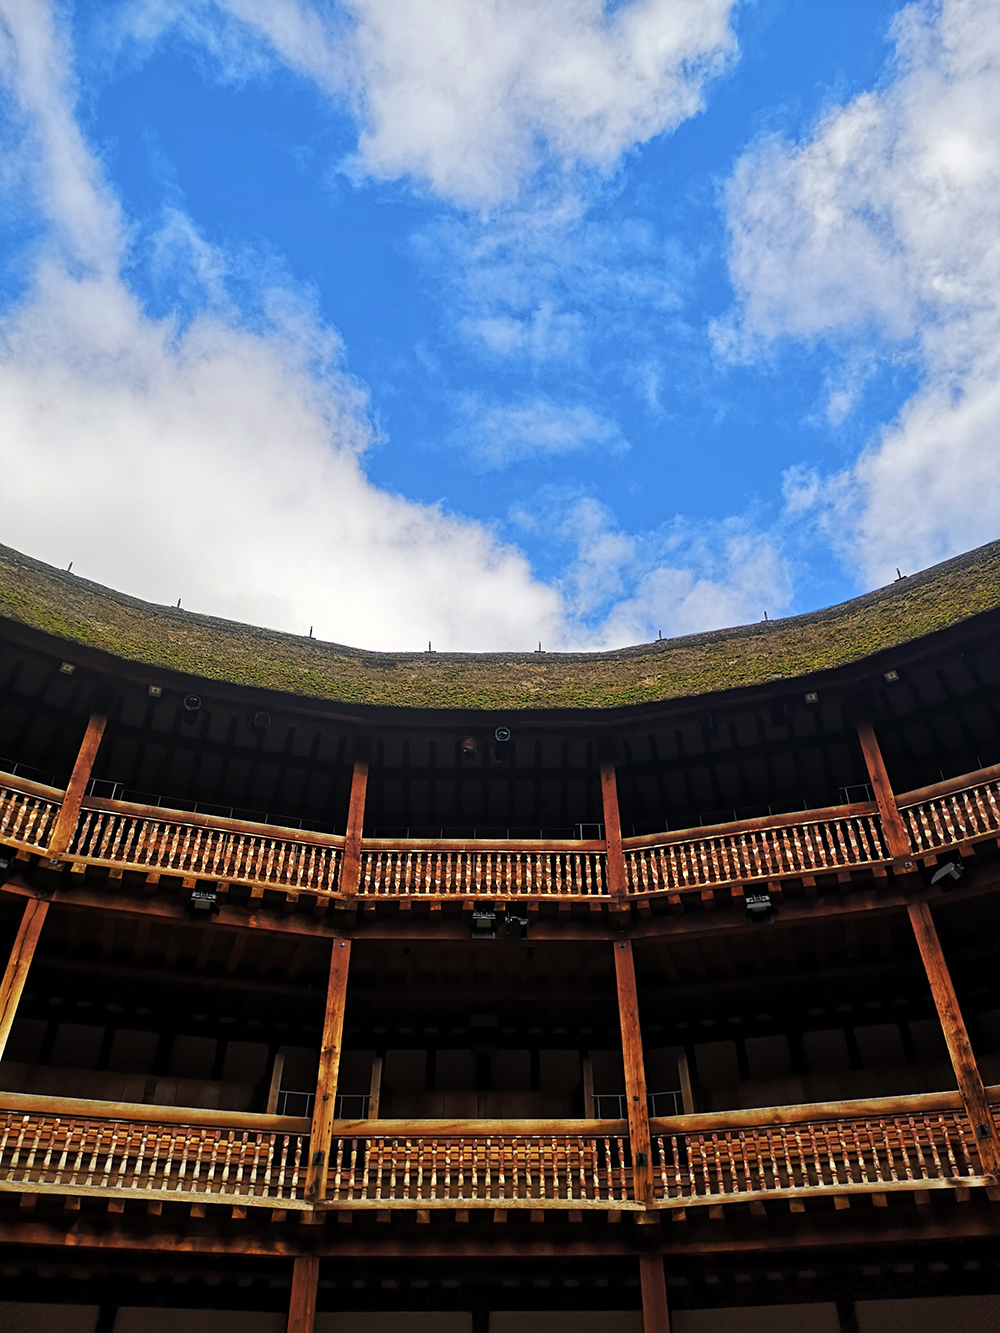 A bright blue sky, with streaks of clouds, above the timber tiered galleries of the Globe Theatre.